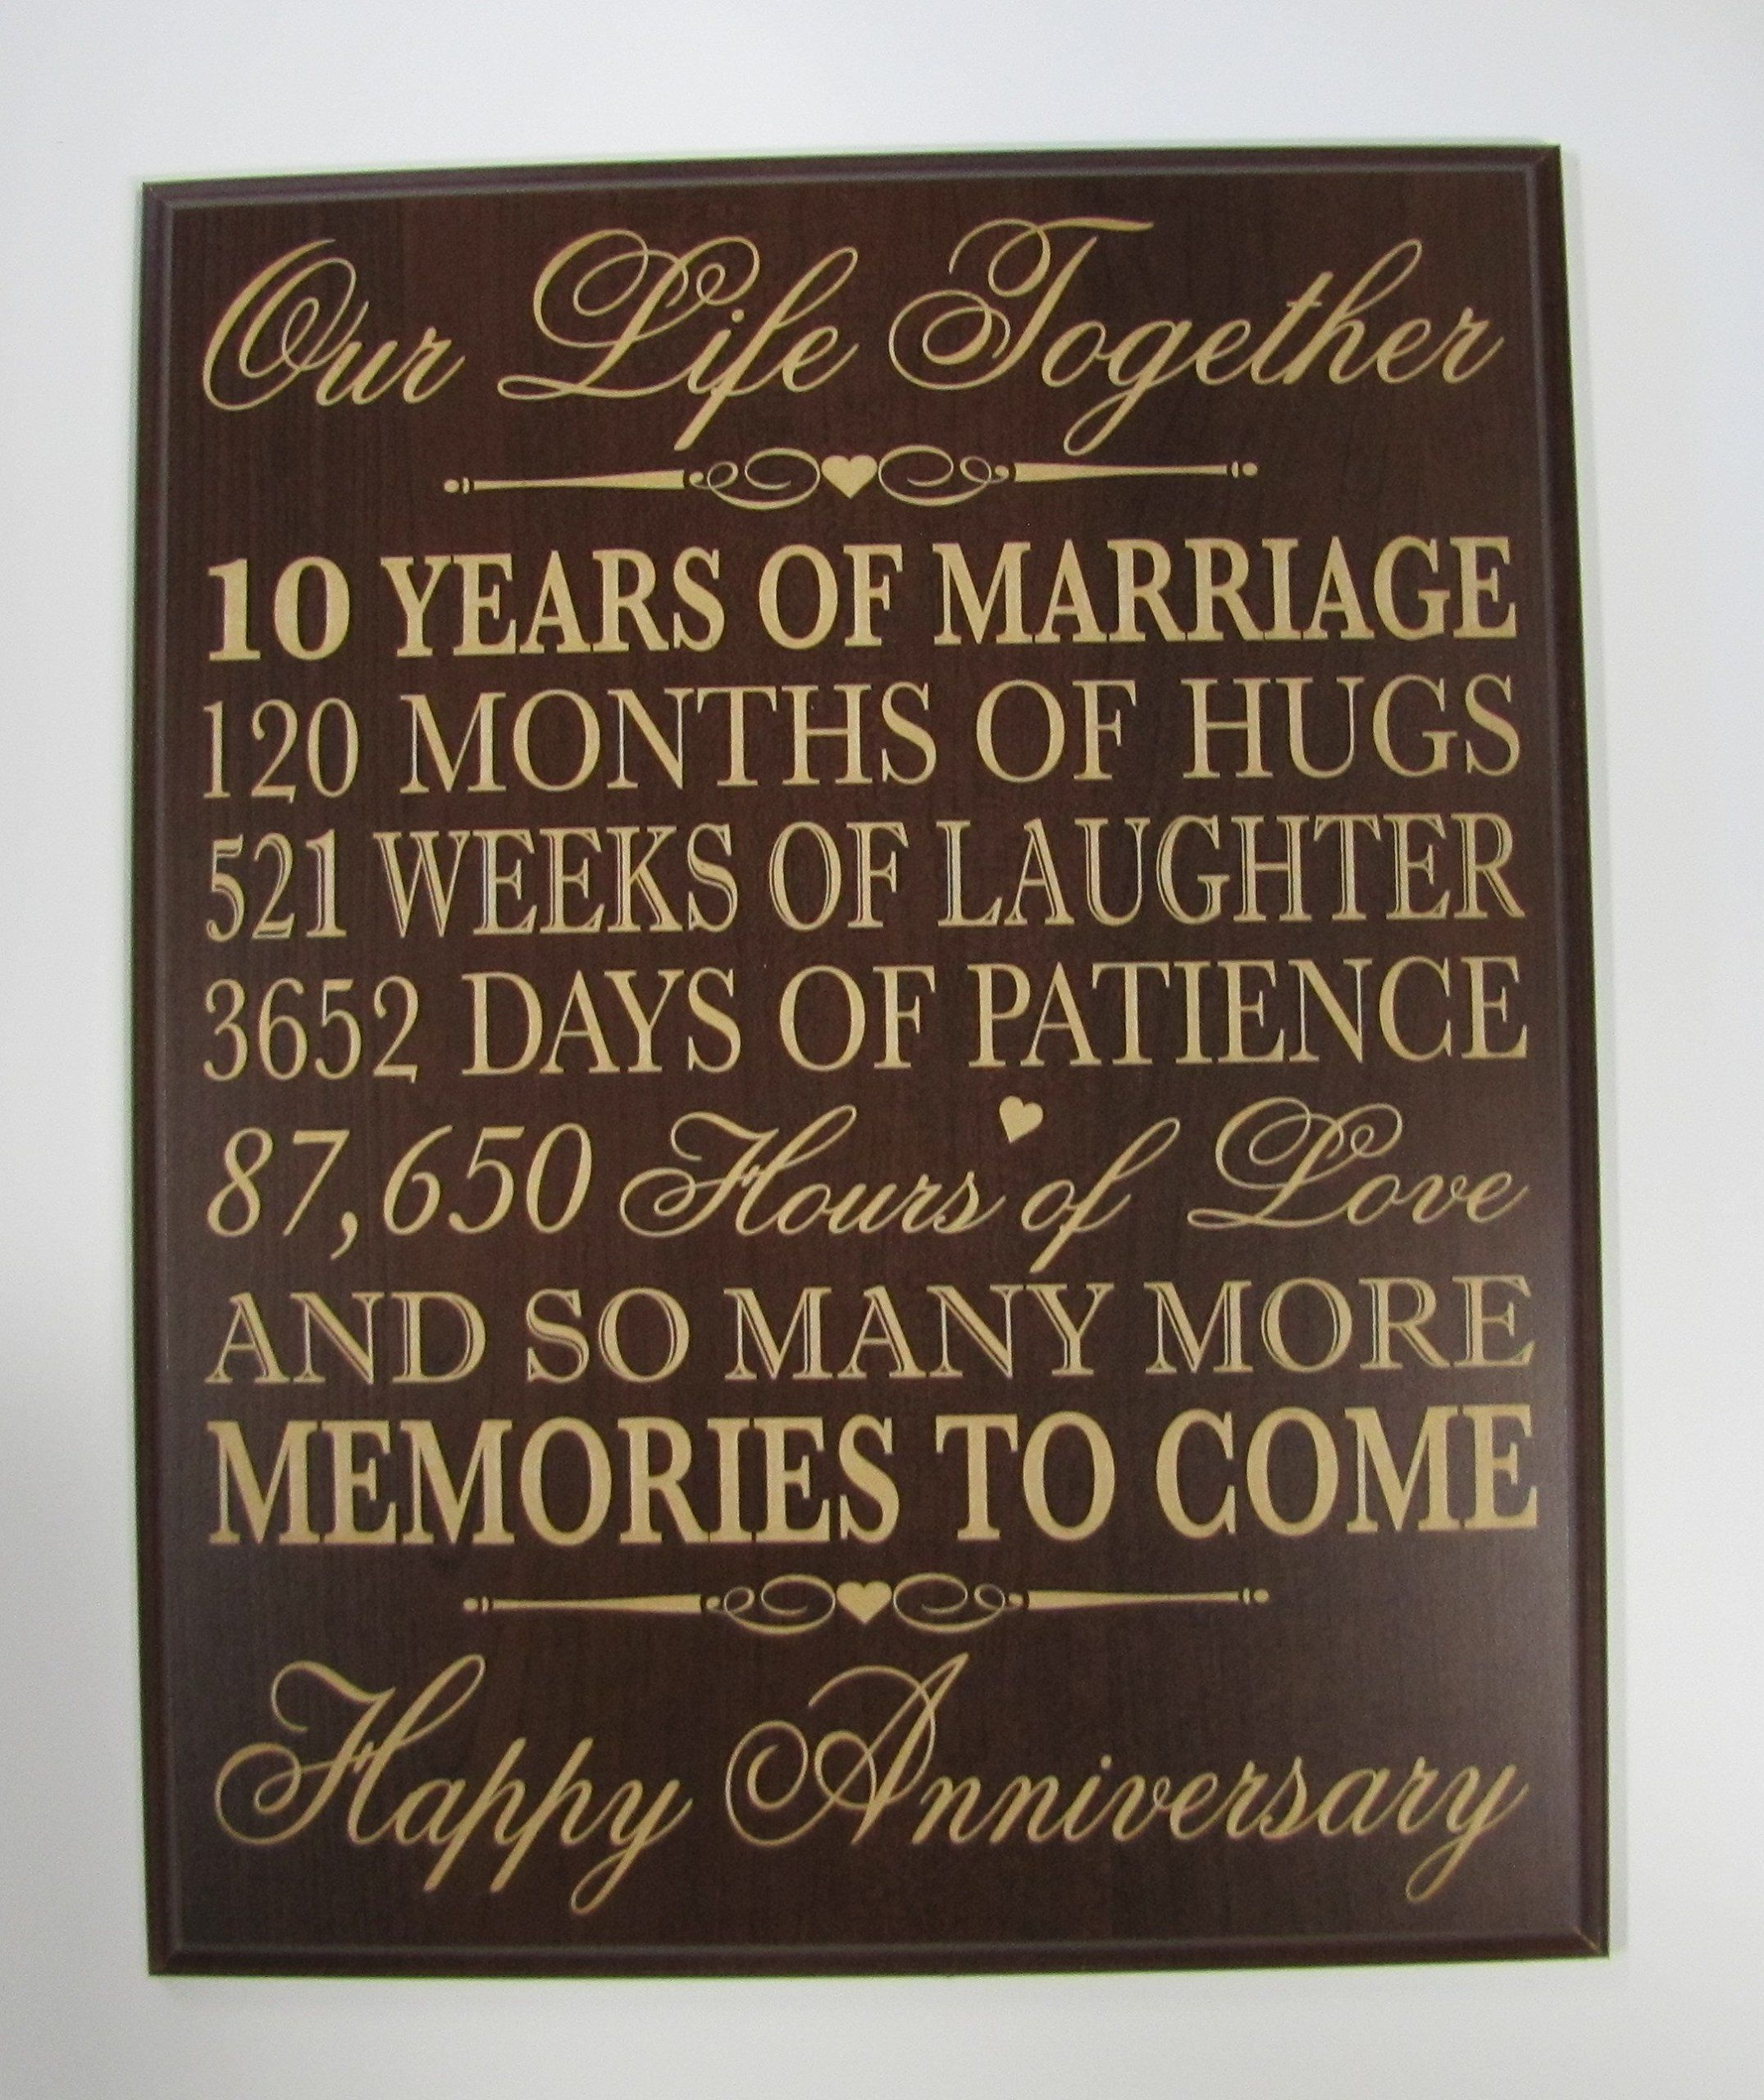 10th Wedding Anniversary Wall Plaque Gifts For Couple 10th Anniversa 10th Anniversary Gifts 25 Wedding Anniversary Gifts 50 Wedding Anniversary Gifts